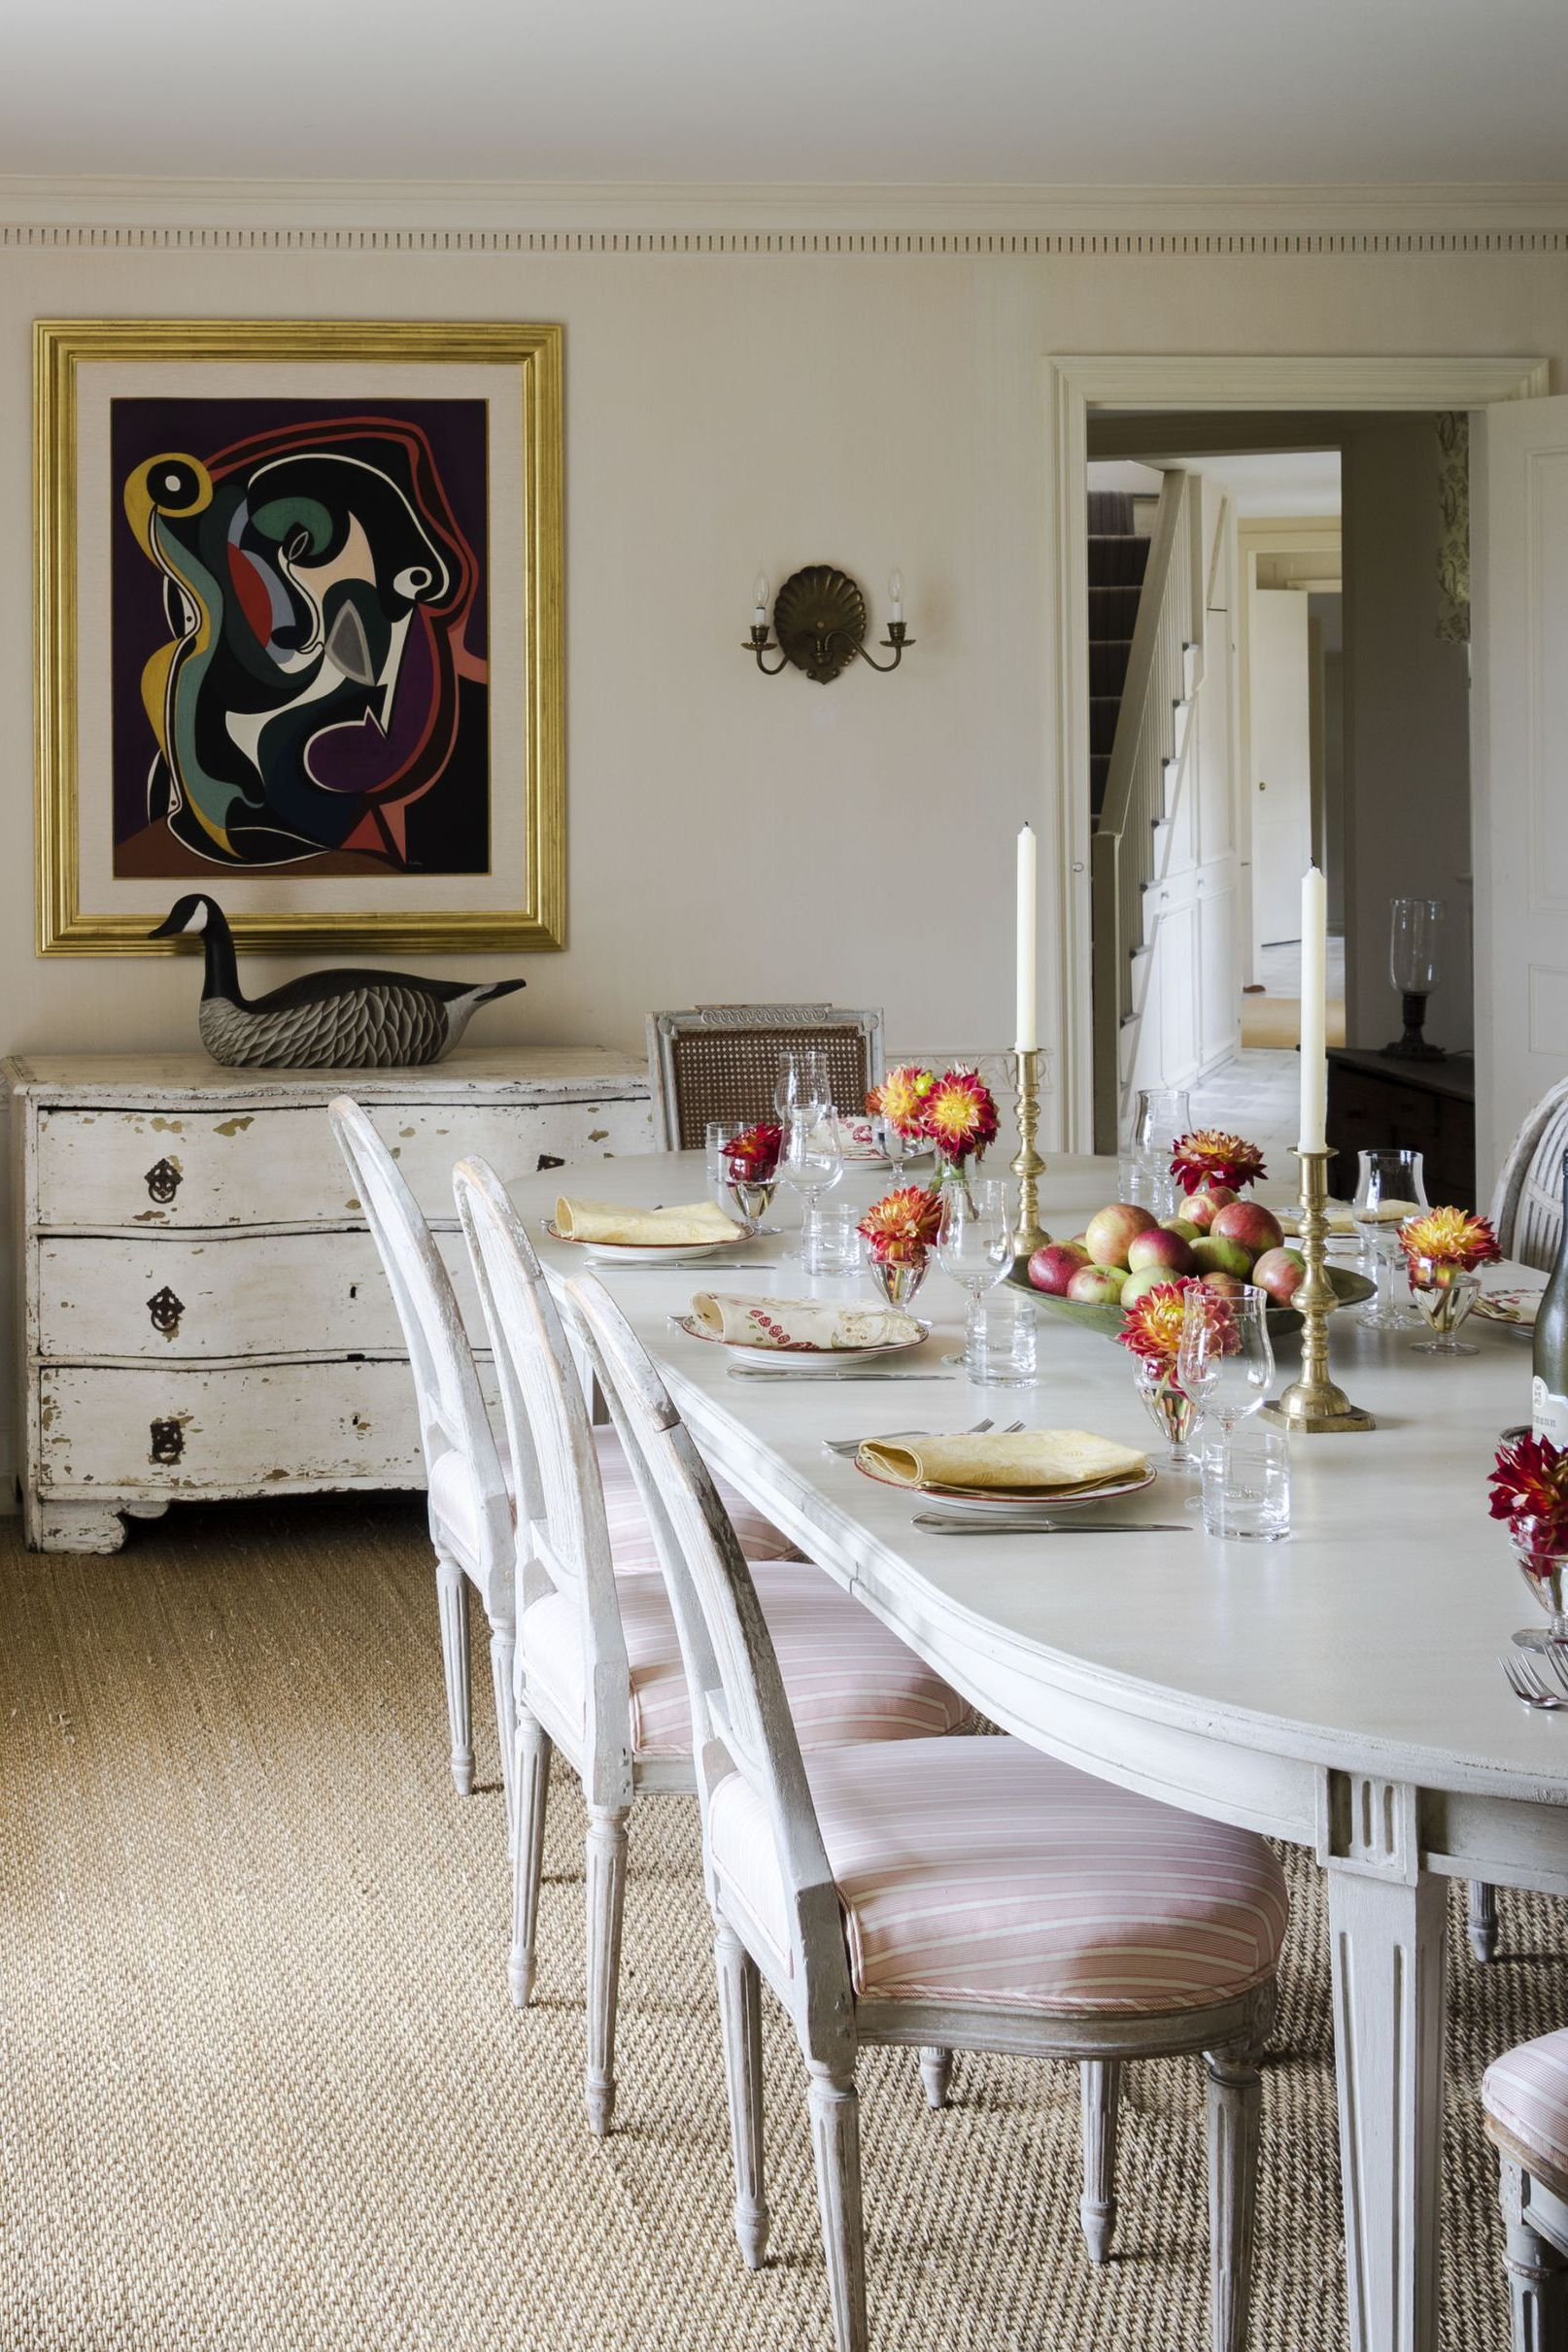 10 Stylish French Country Kitchen Decor Ideas